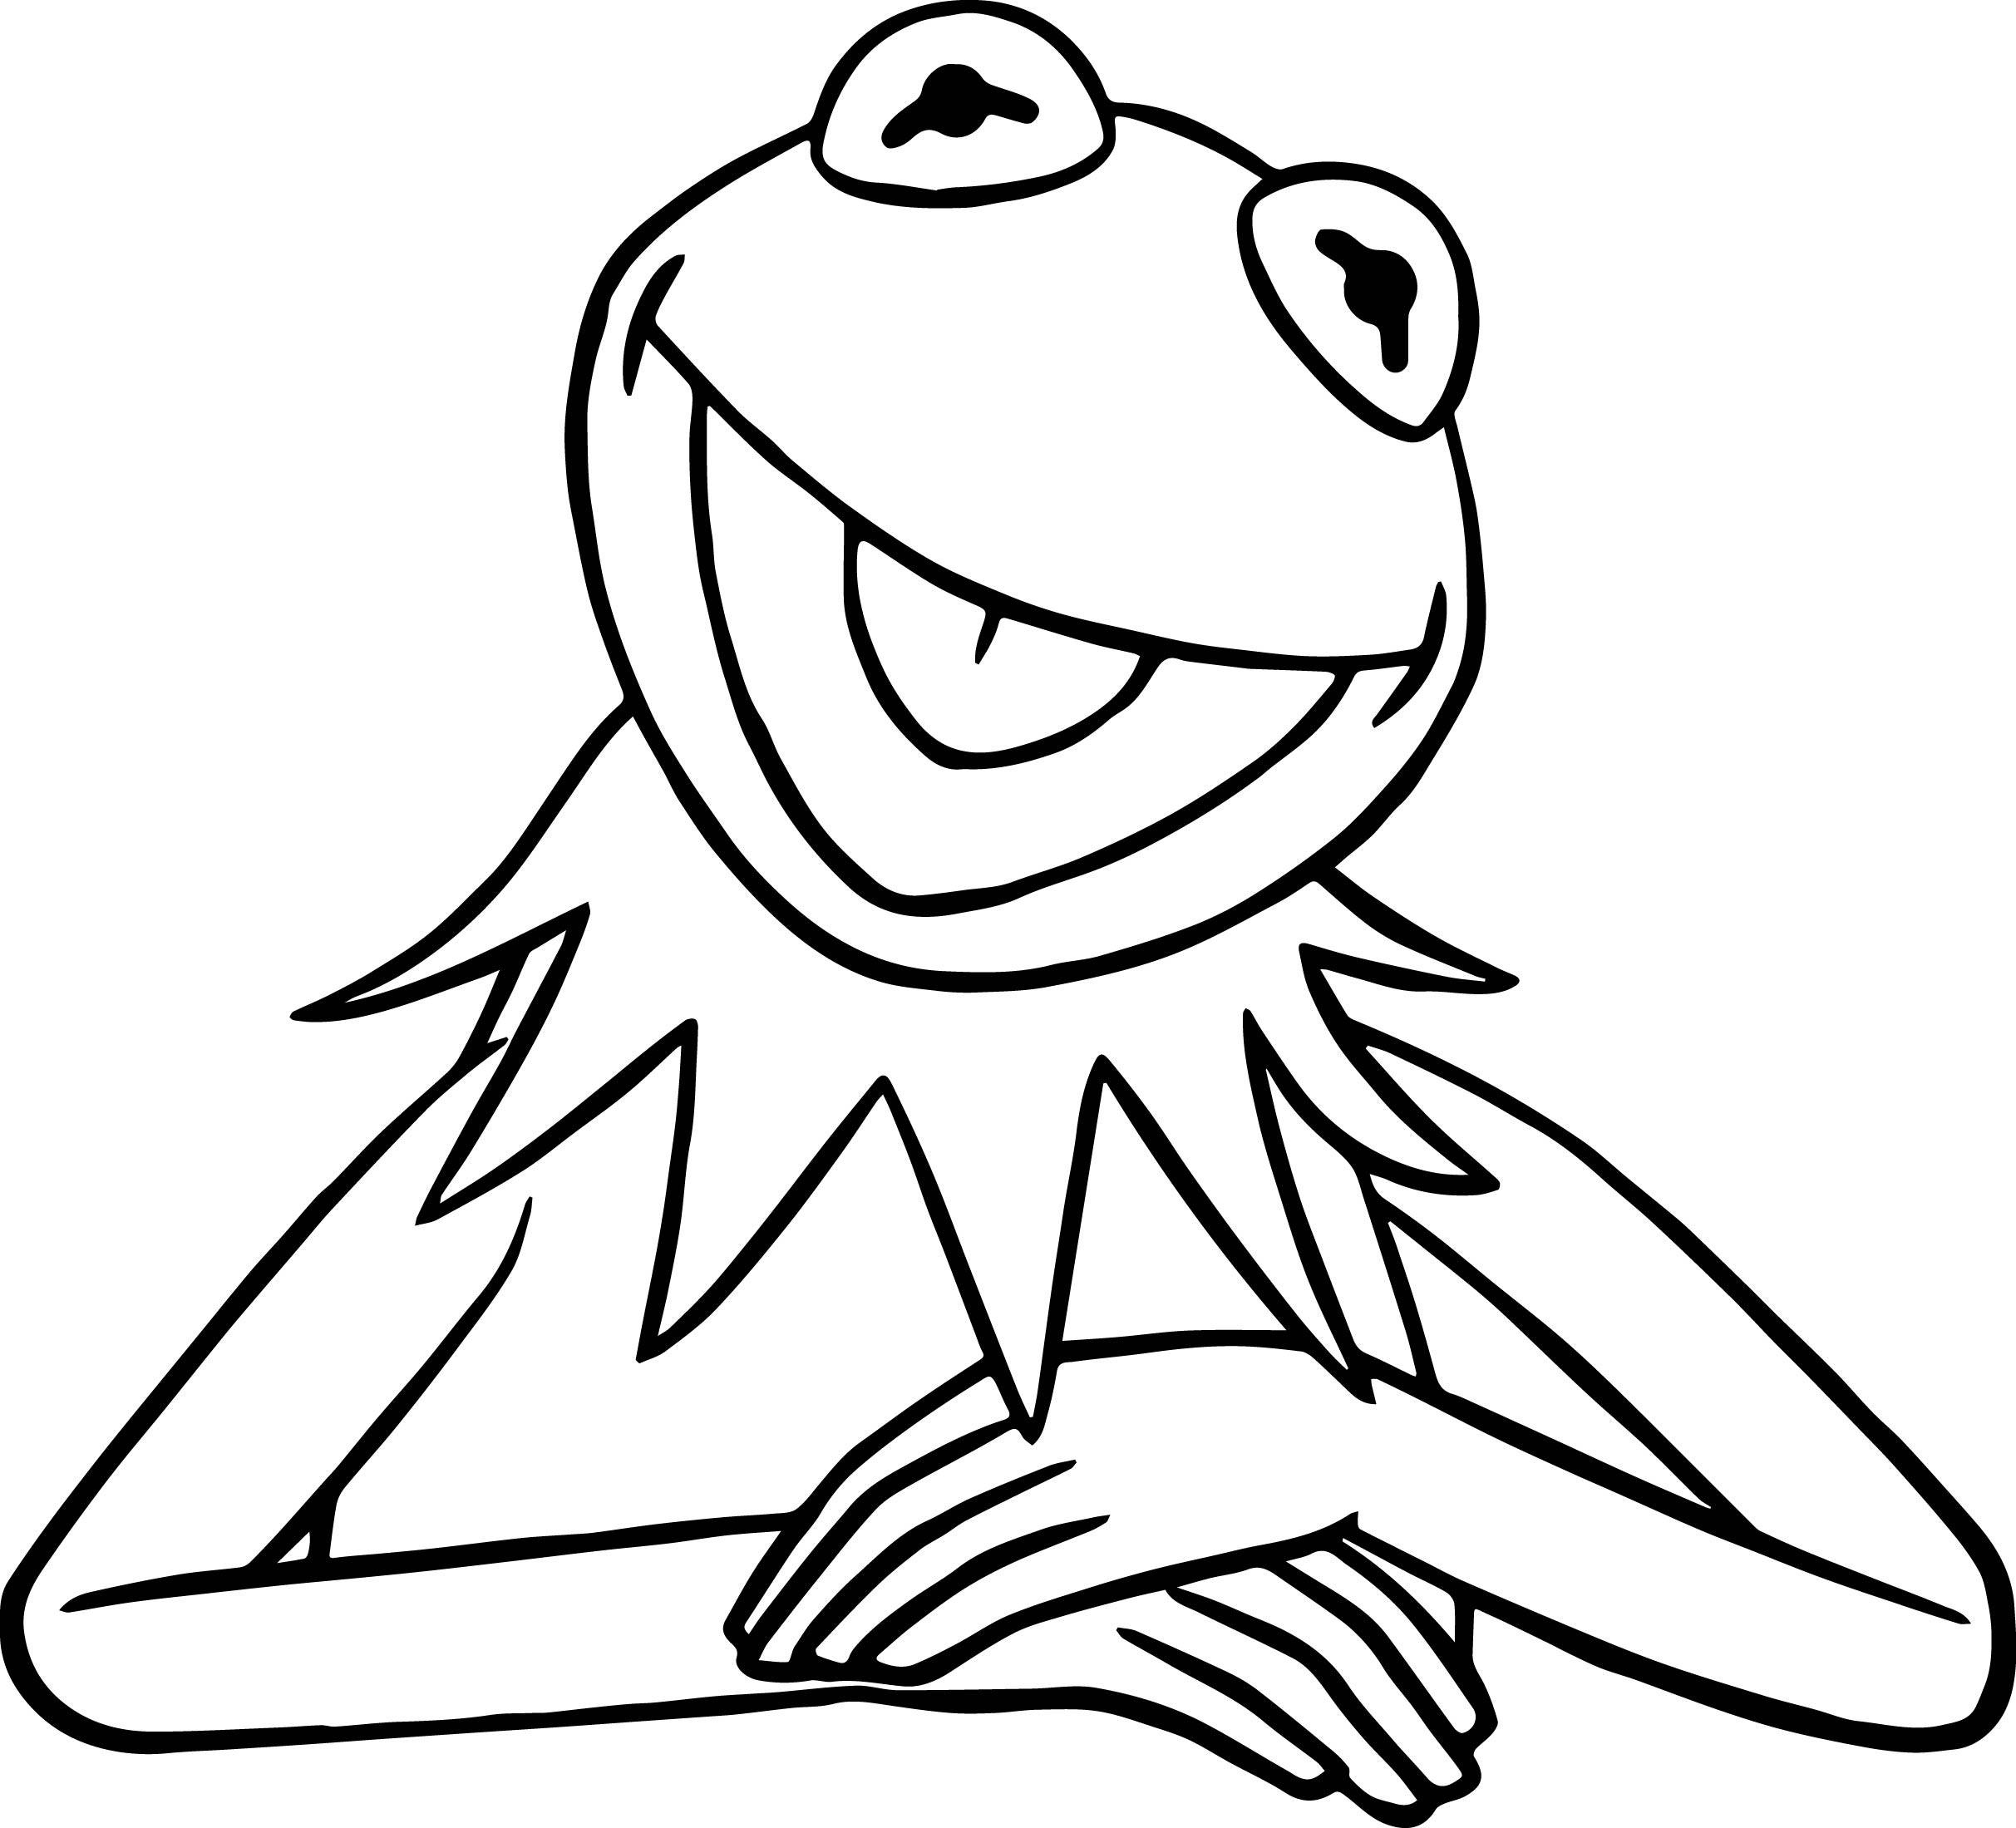 kermit the frog drawing collection of kermit clipart free download best kermit drawing frog kermit the